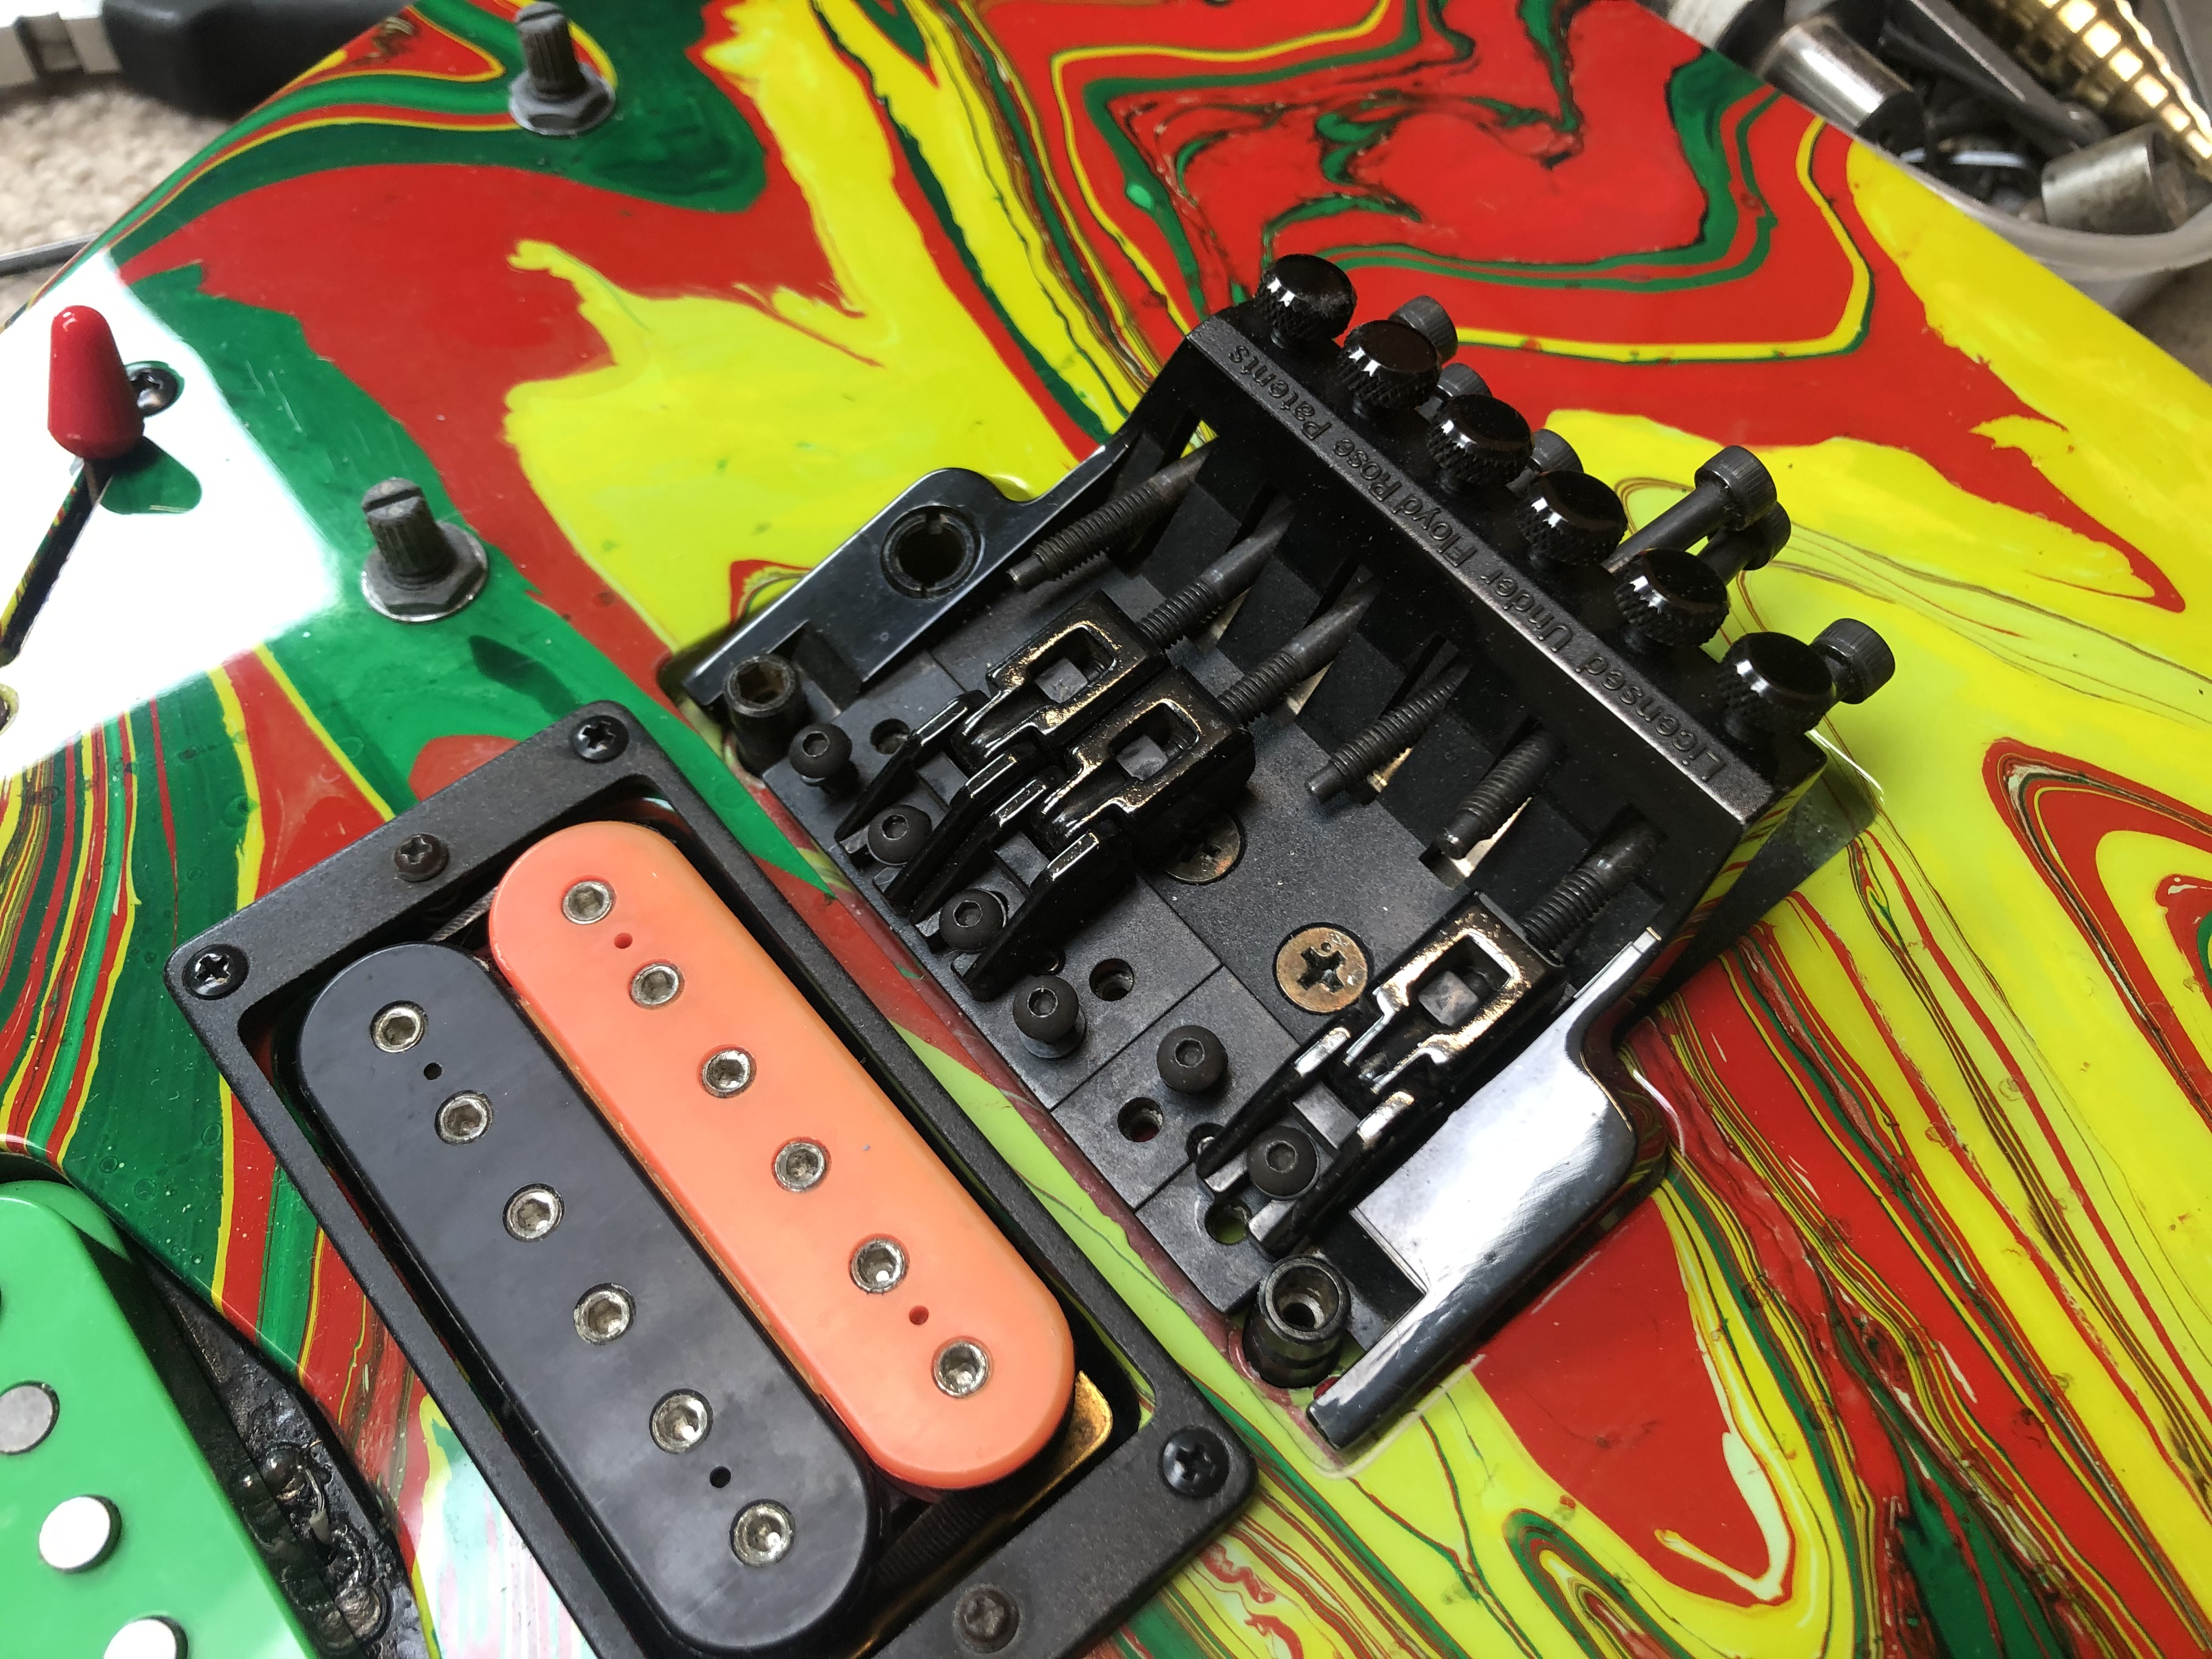 Fret Level and more on Ibanez Guitar